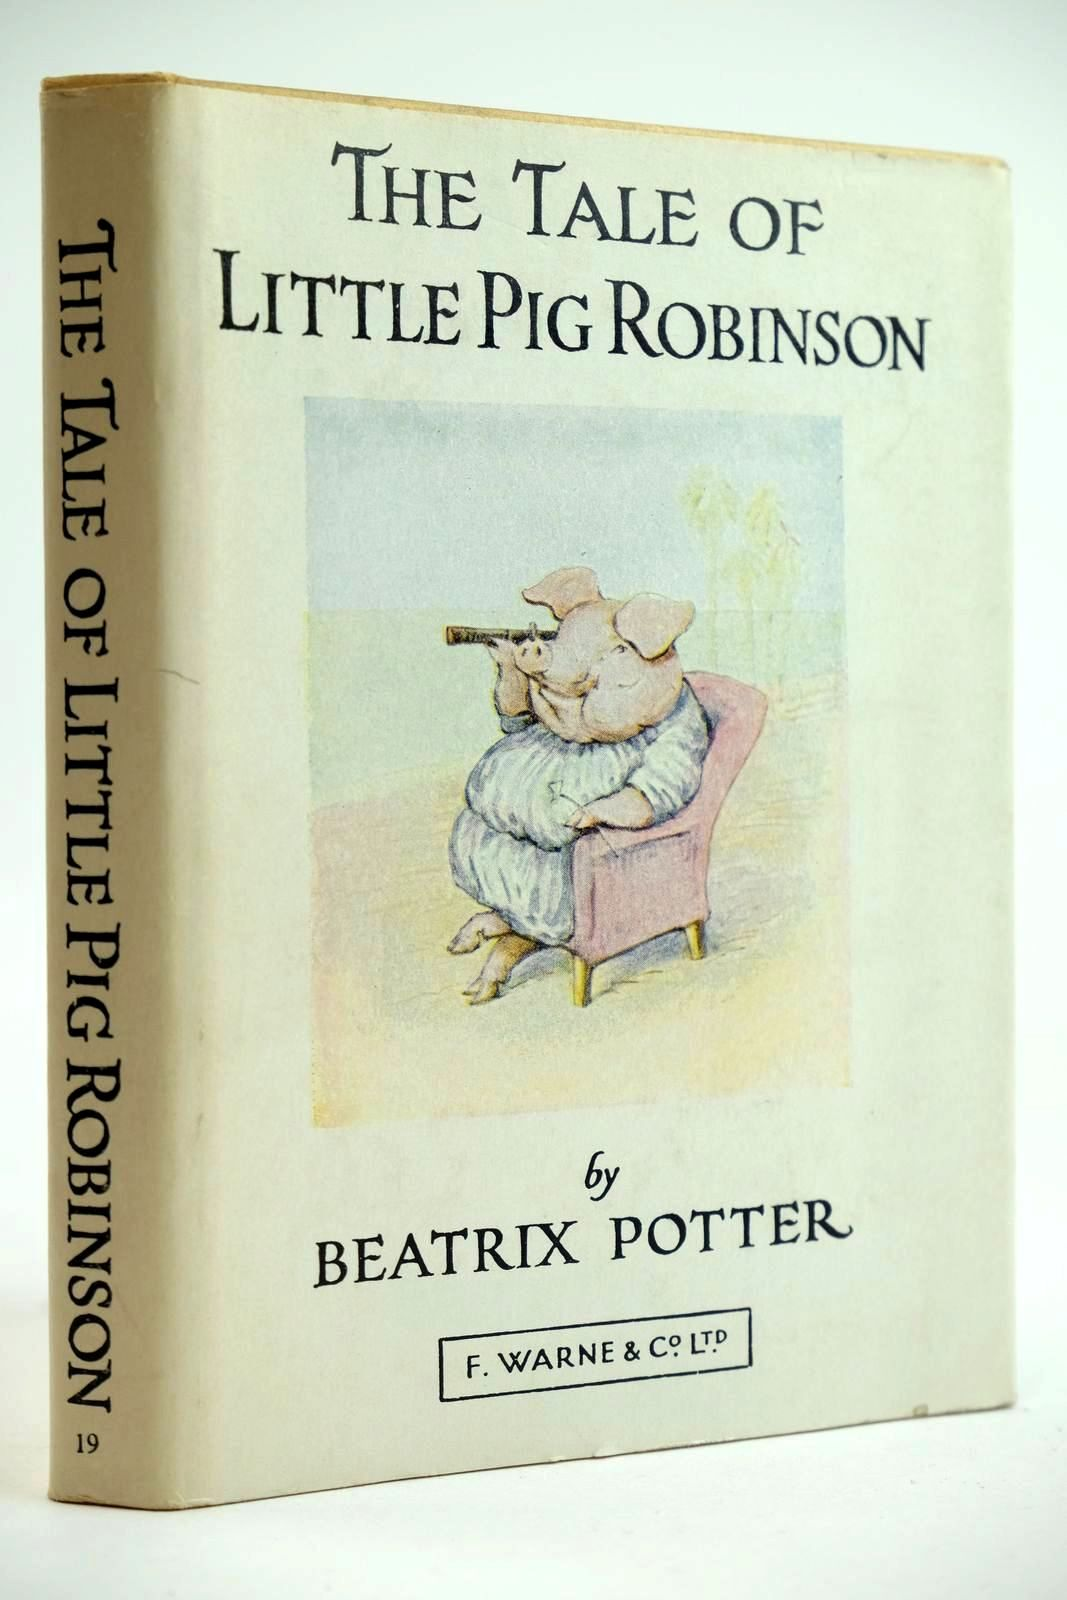 Photo of THE TALE OF LITTLE PIG ROBINSON written by Potter, Beatrix illustrated by Potter, Beatrix published by Frederick Warne & Co Ltd. (STOCK CODE: 2132066)  for sale by Stella & Rose's Books